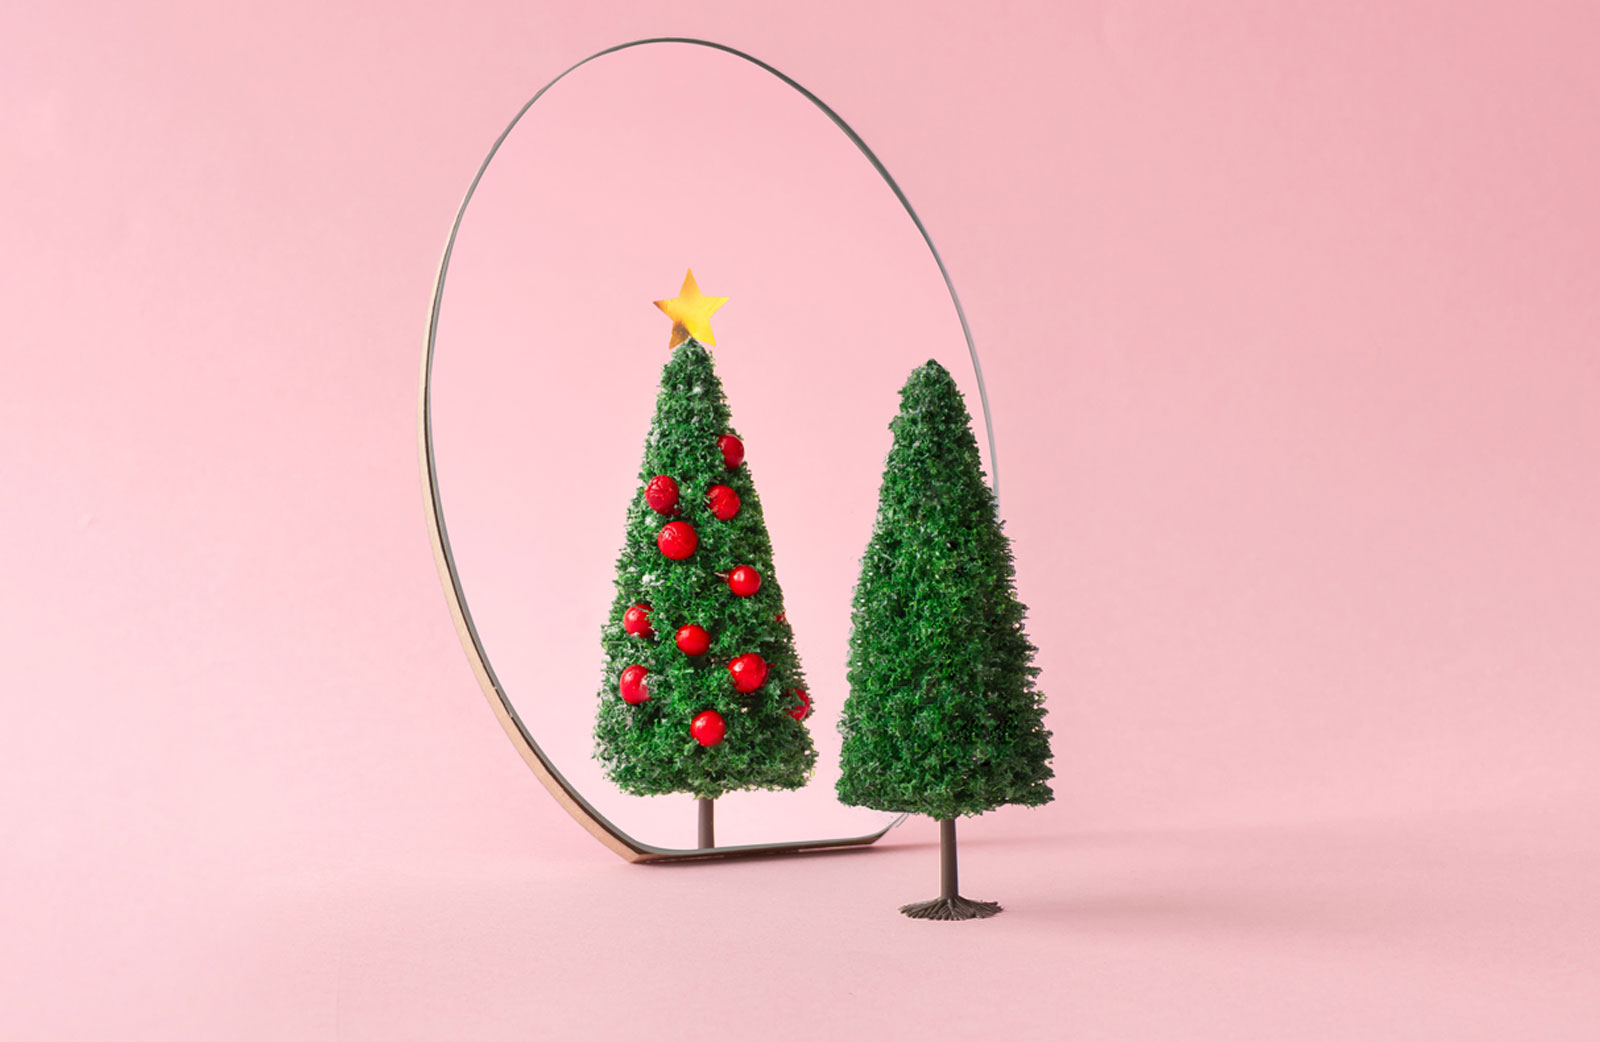 Evergreen conifer in front of a mirror portraying a decorated tree signifying the ultimate experience like AR, VR, and AI